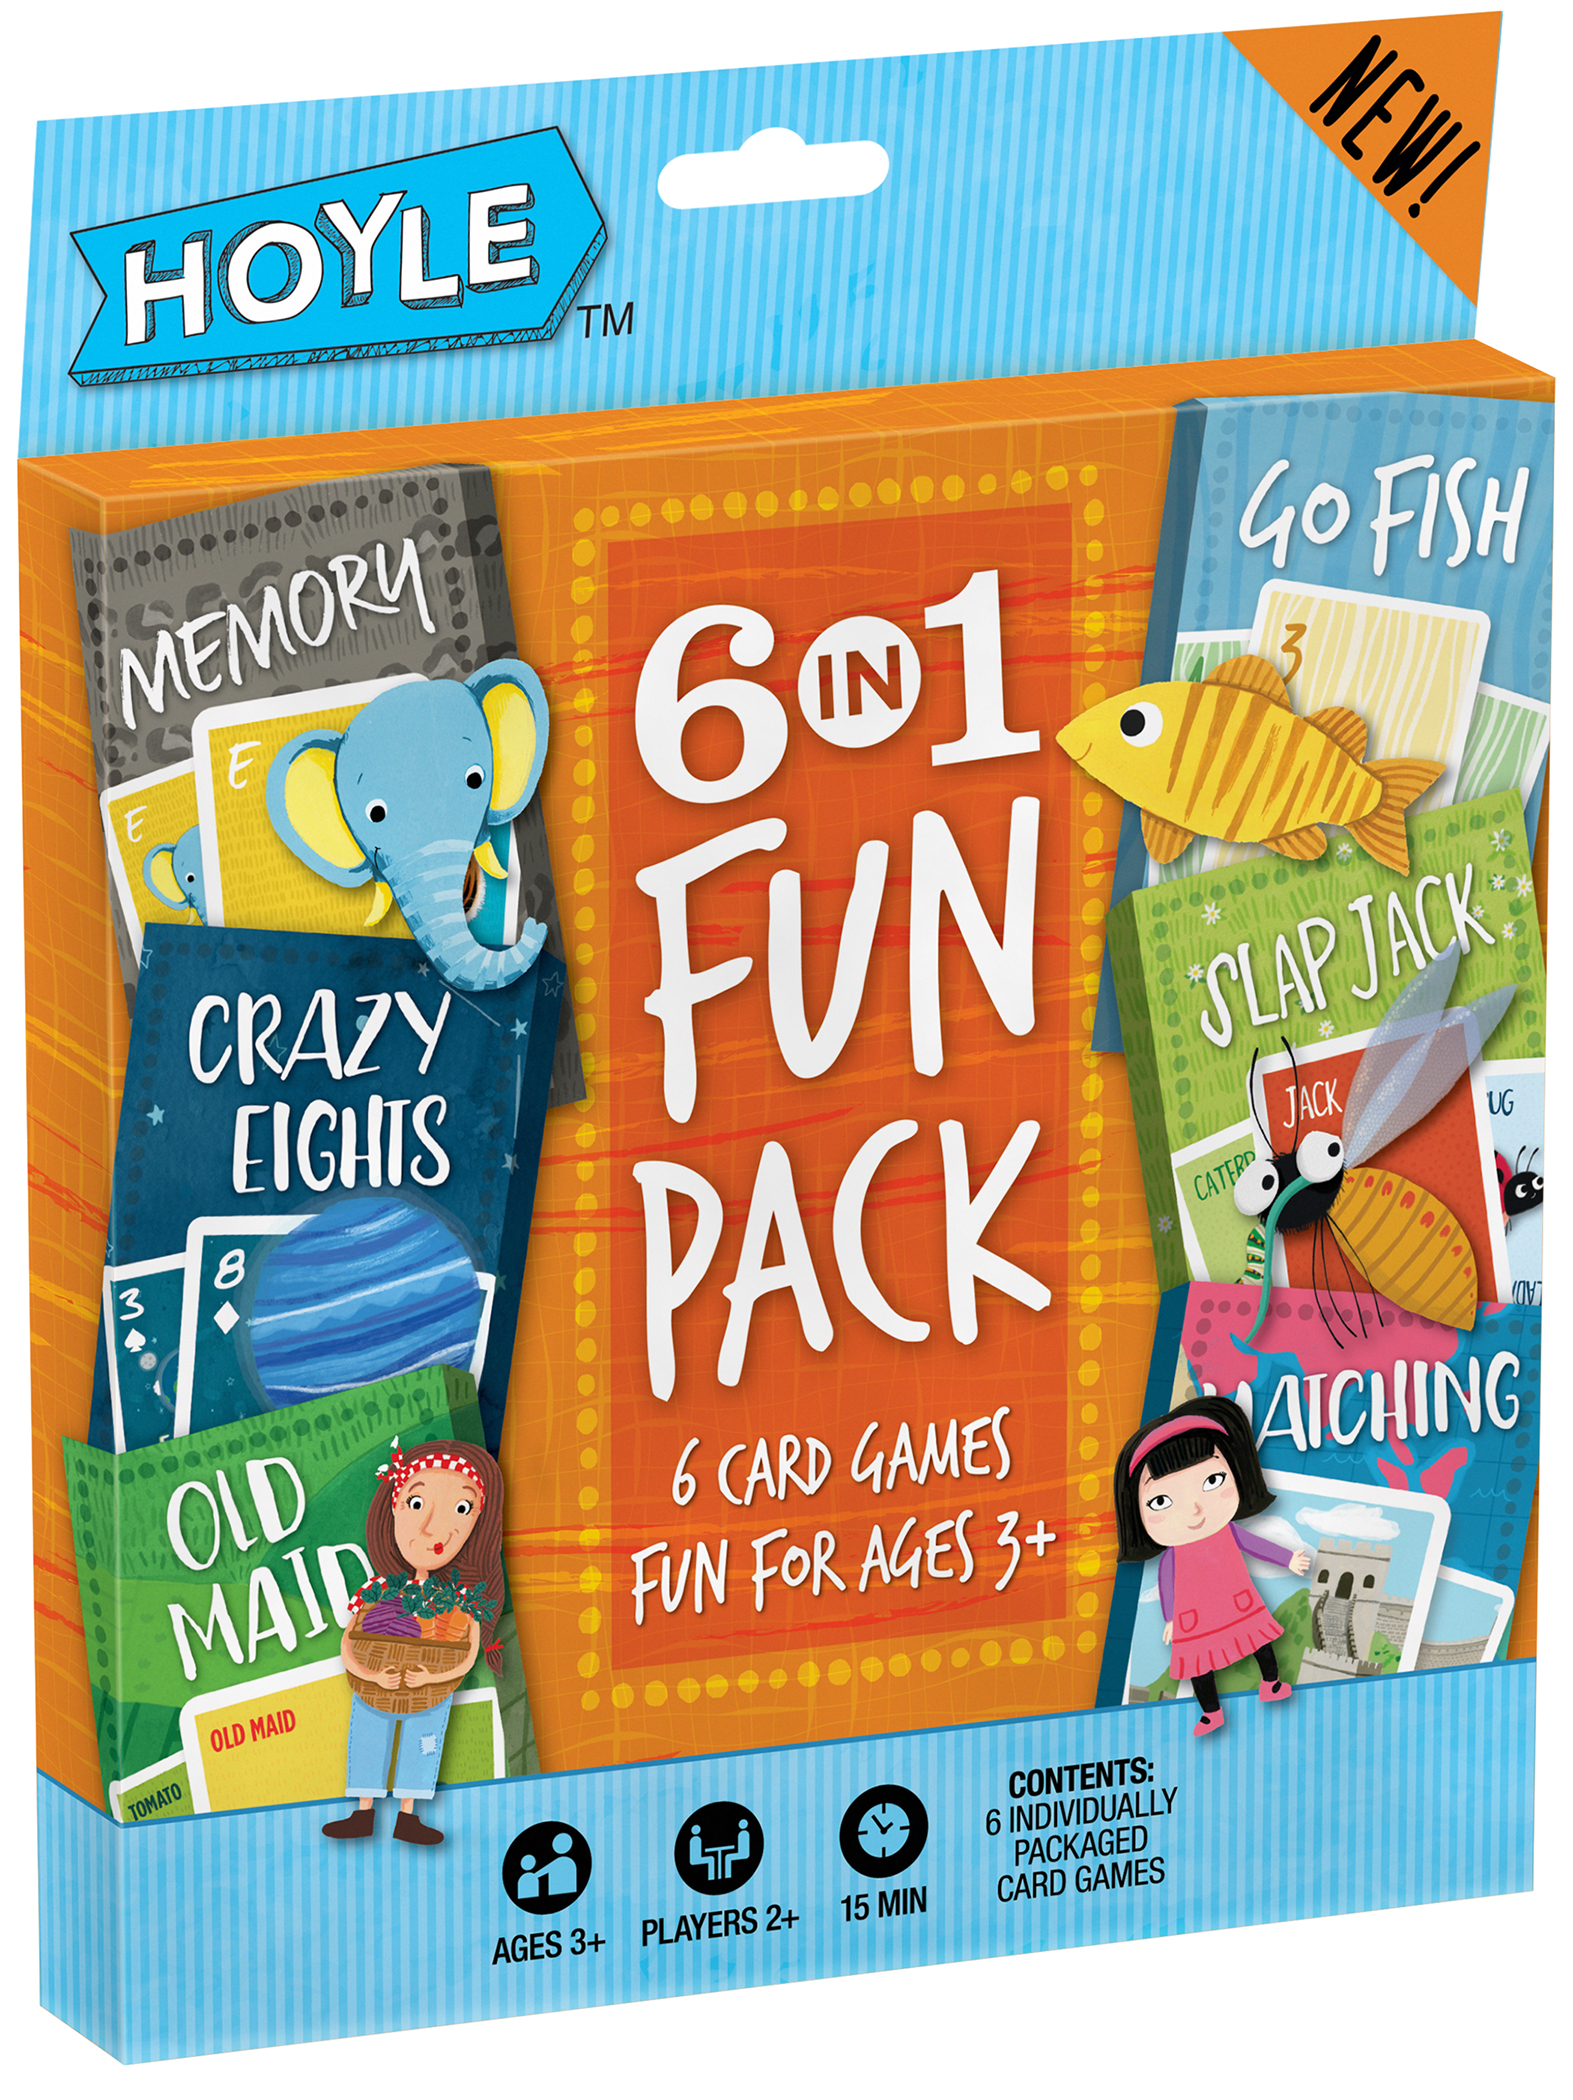 Hoyle 6 in 1 Fun Pack Kids Card Games with Fun-filled Updated Graphics